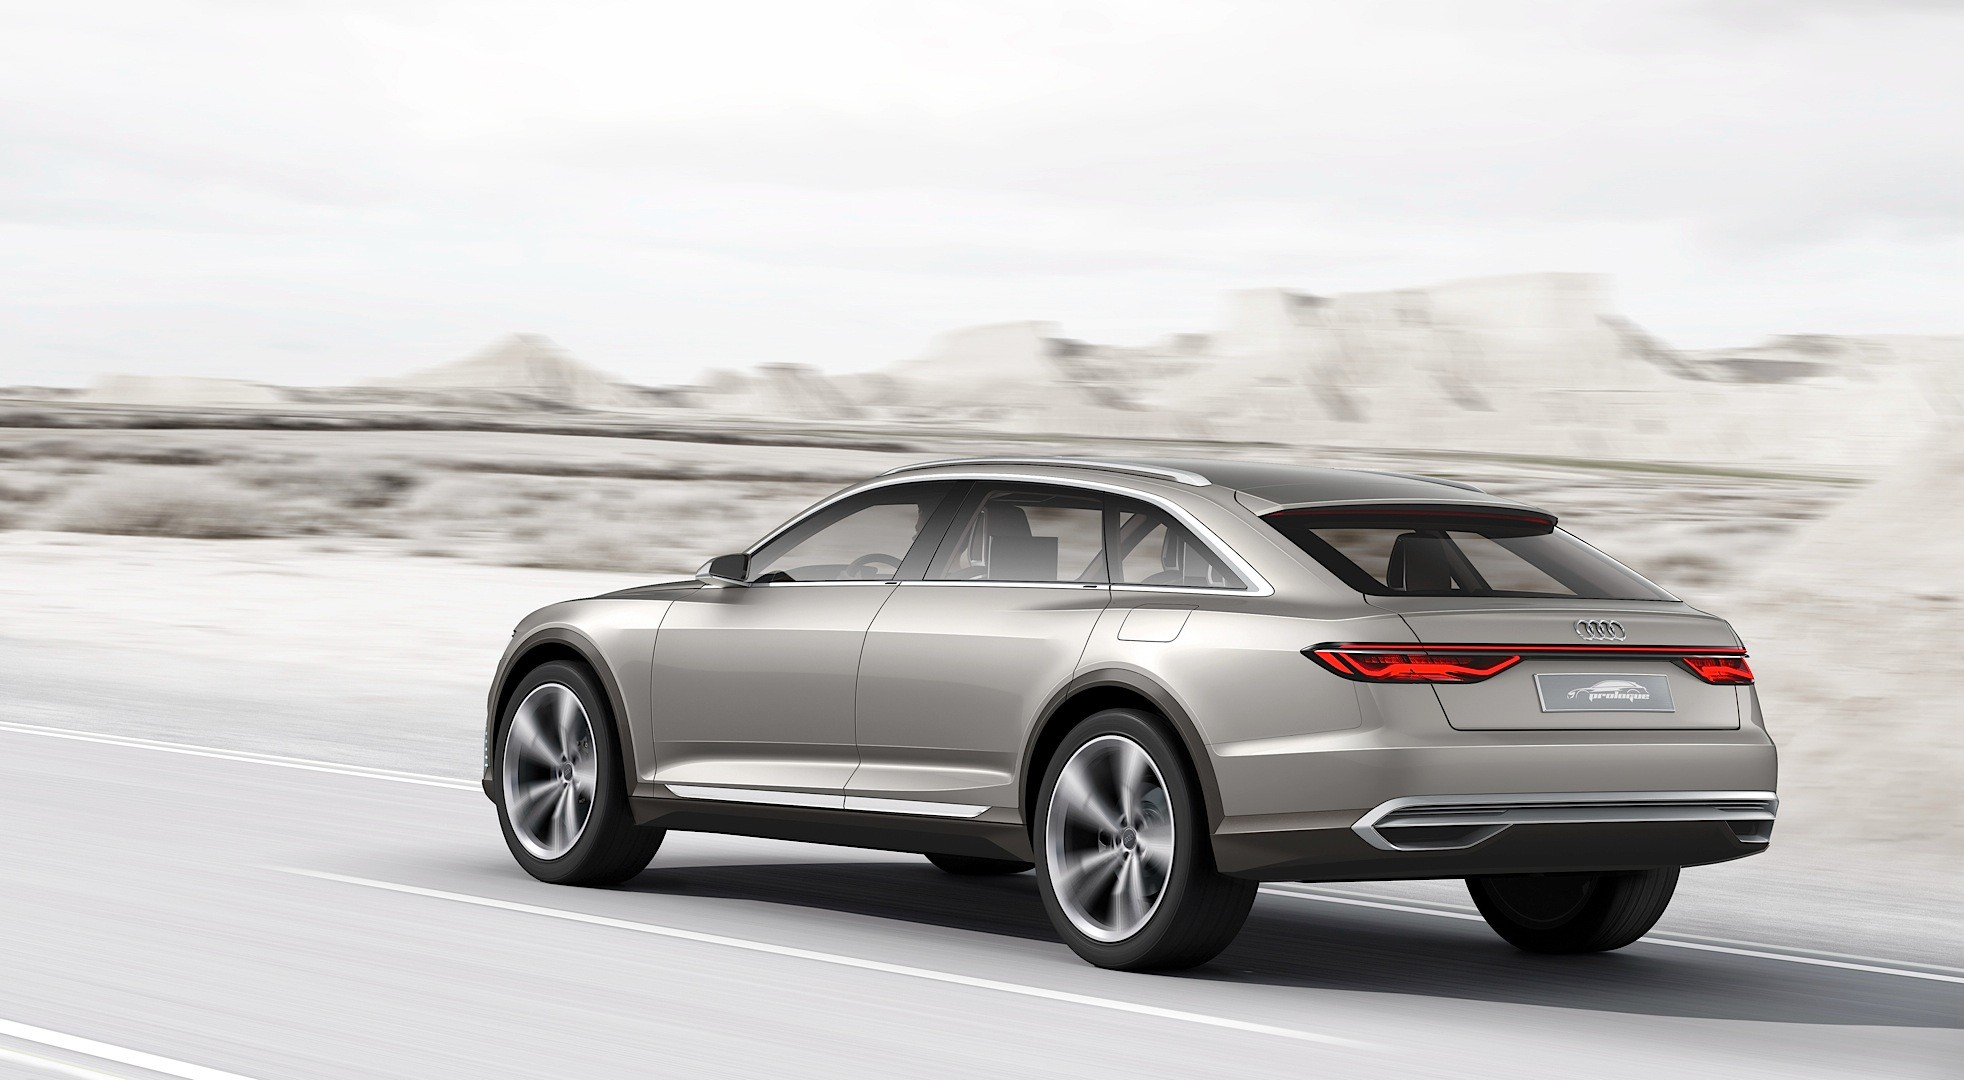 2018 Audi Prologue Concept photo - 2